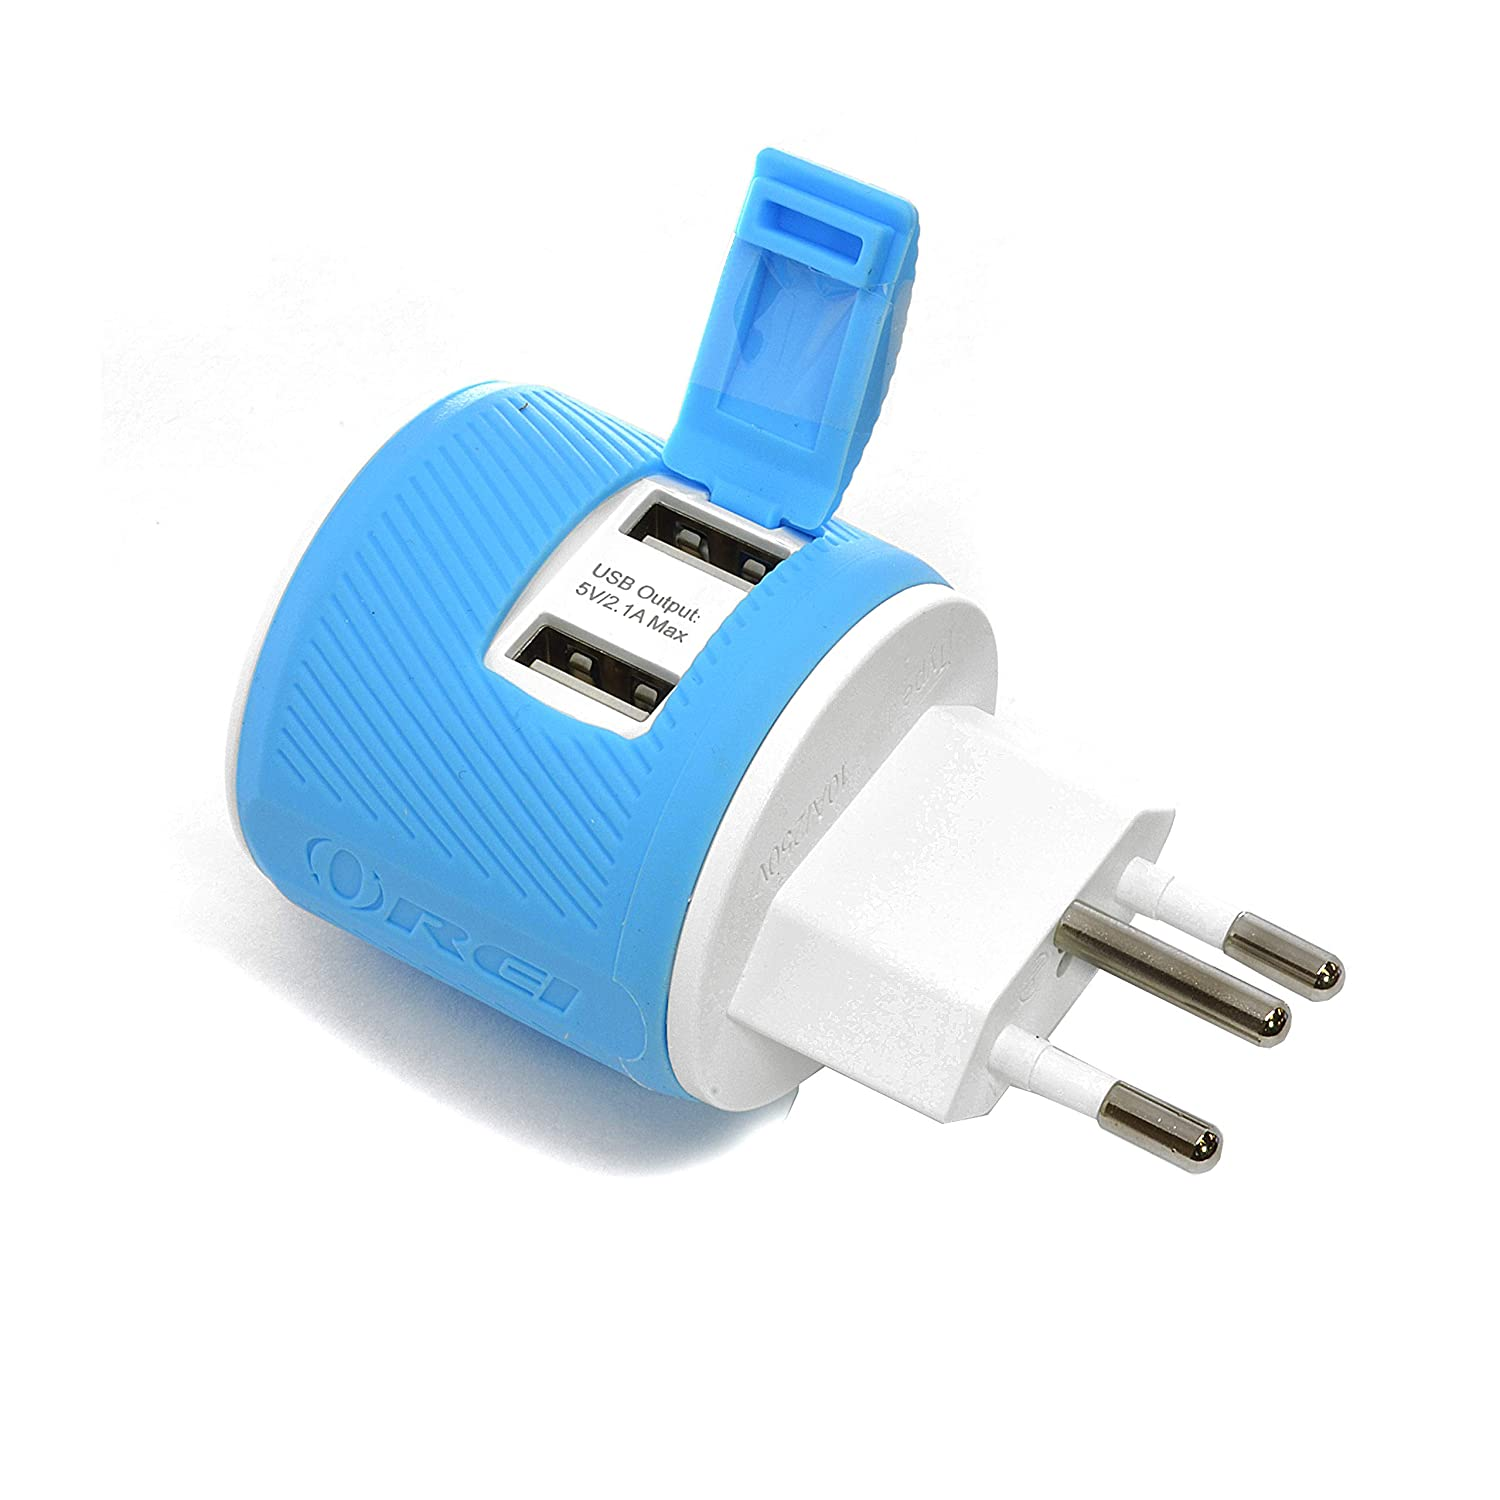 Orei Most of Europe Travel Plug Adapter - Dual USB - Surge Protection - Type C U2U-9C